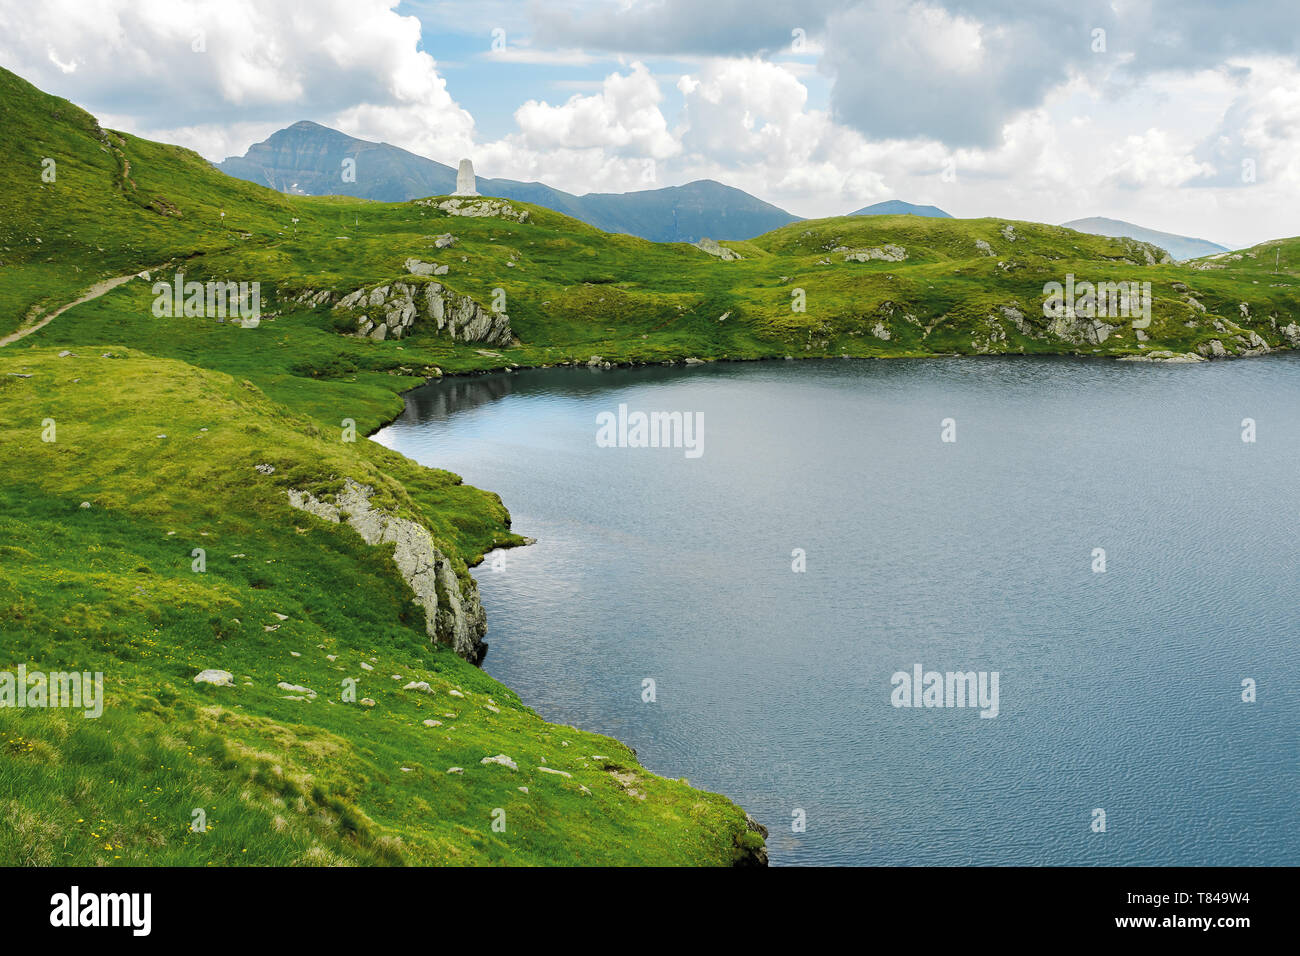 glacier mountain lake in summer. beautiful nature scenery in romania. wonderful background with water, grass, and rocks. location fagaras ridge - Stock Image